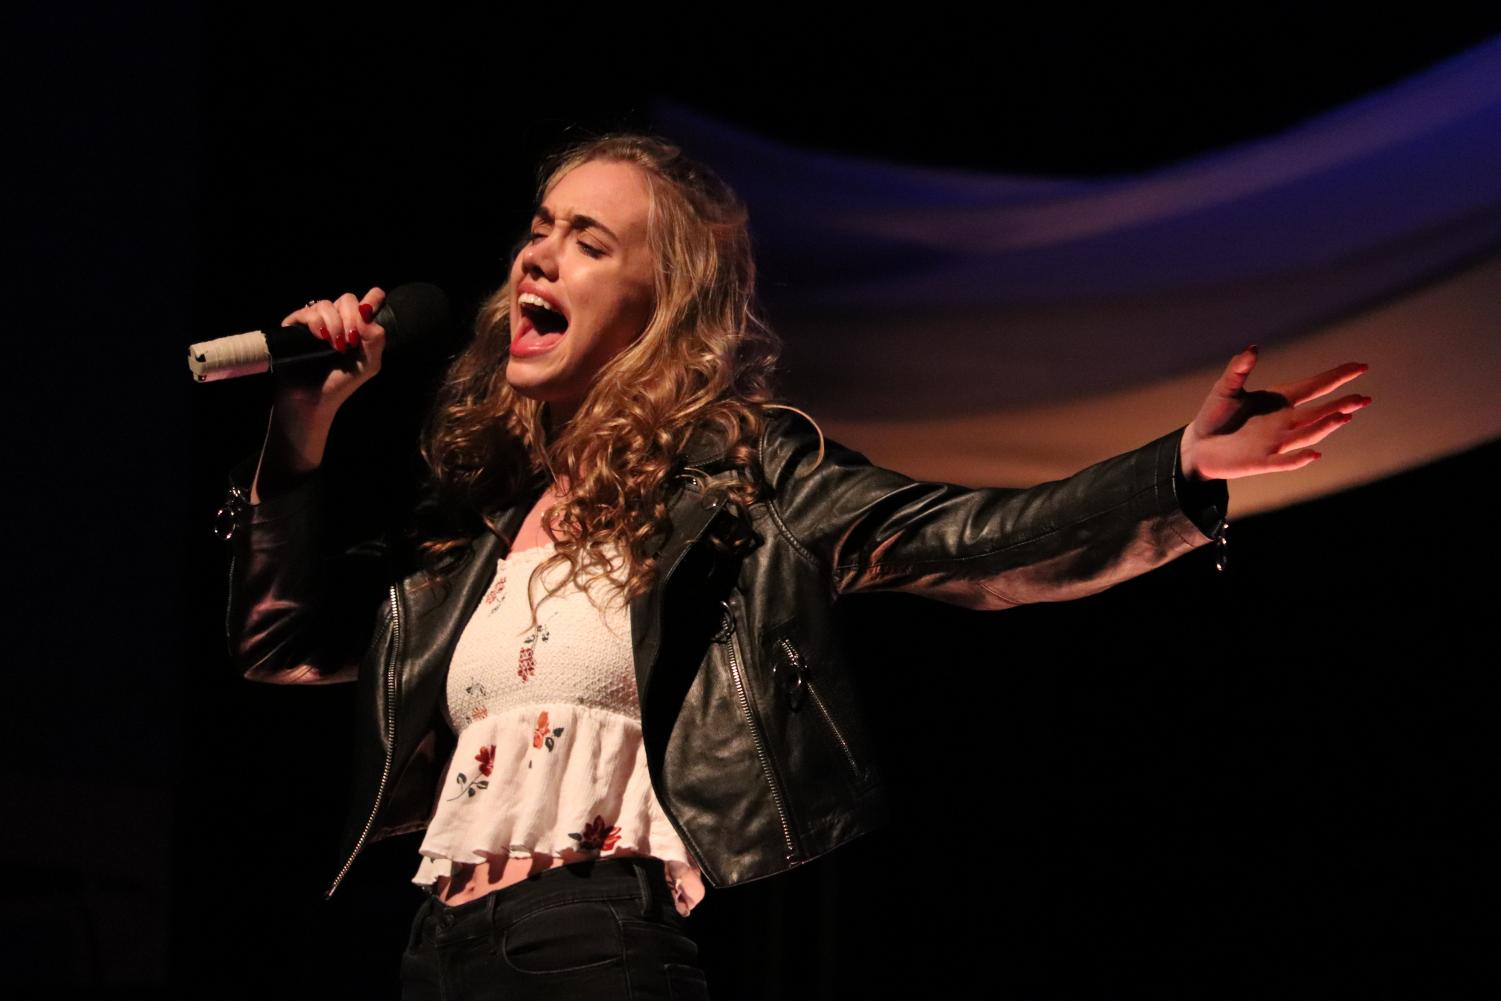 ECA Junior Greer Taylor performing with Seth Dyer during the final performances of the night. The duet earned Tayler and Dyer a standing ovation and landed them in the top 5.